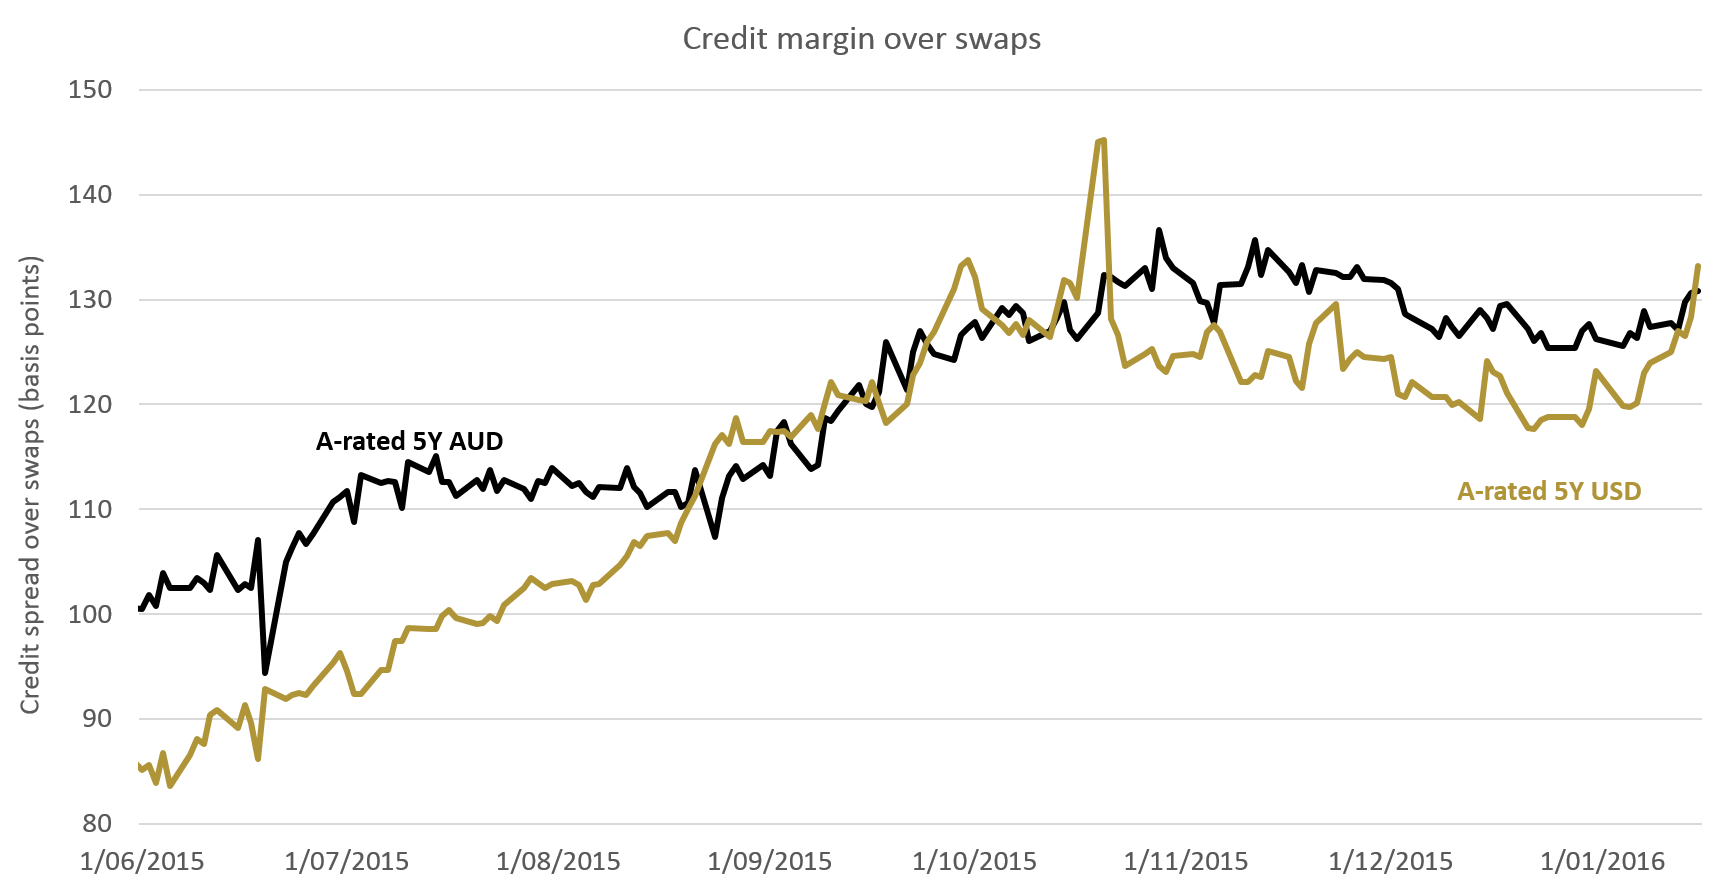 Chart 2: USD and AUD credit spreads widen in 2H15*